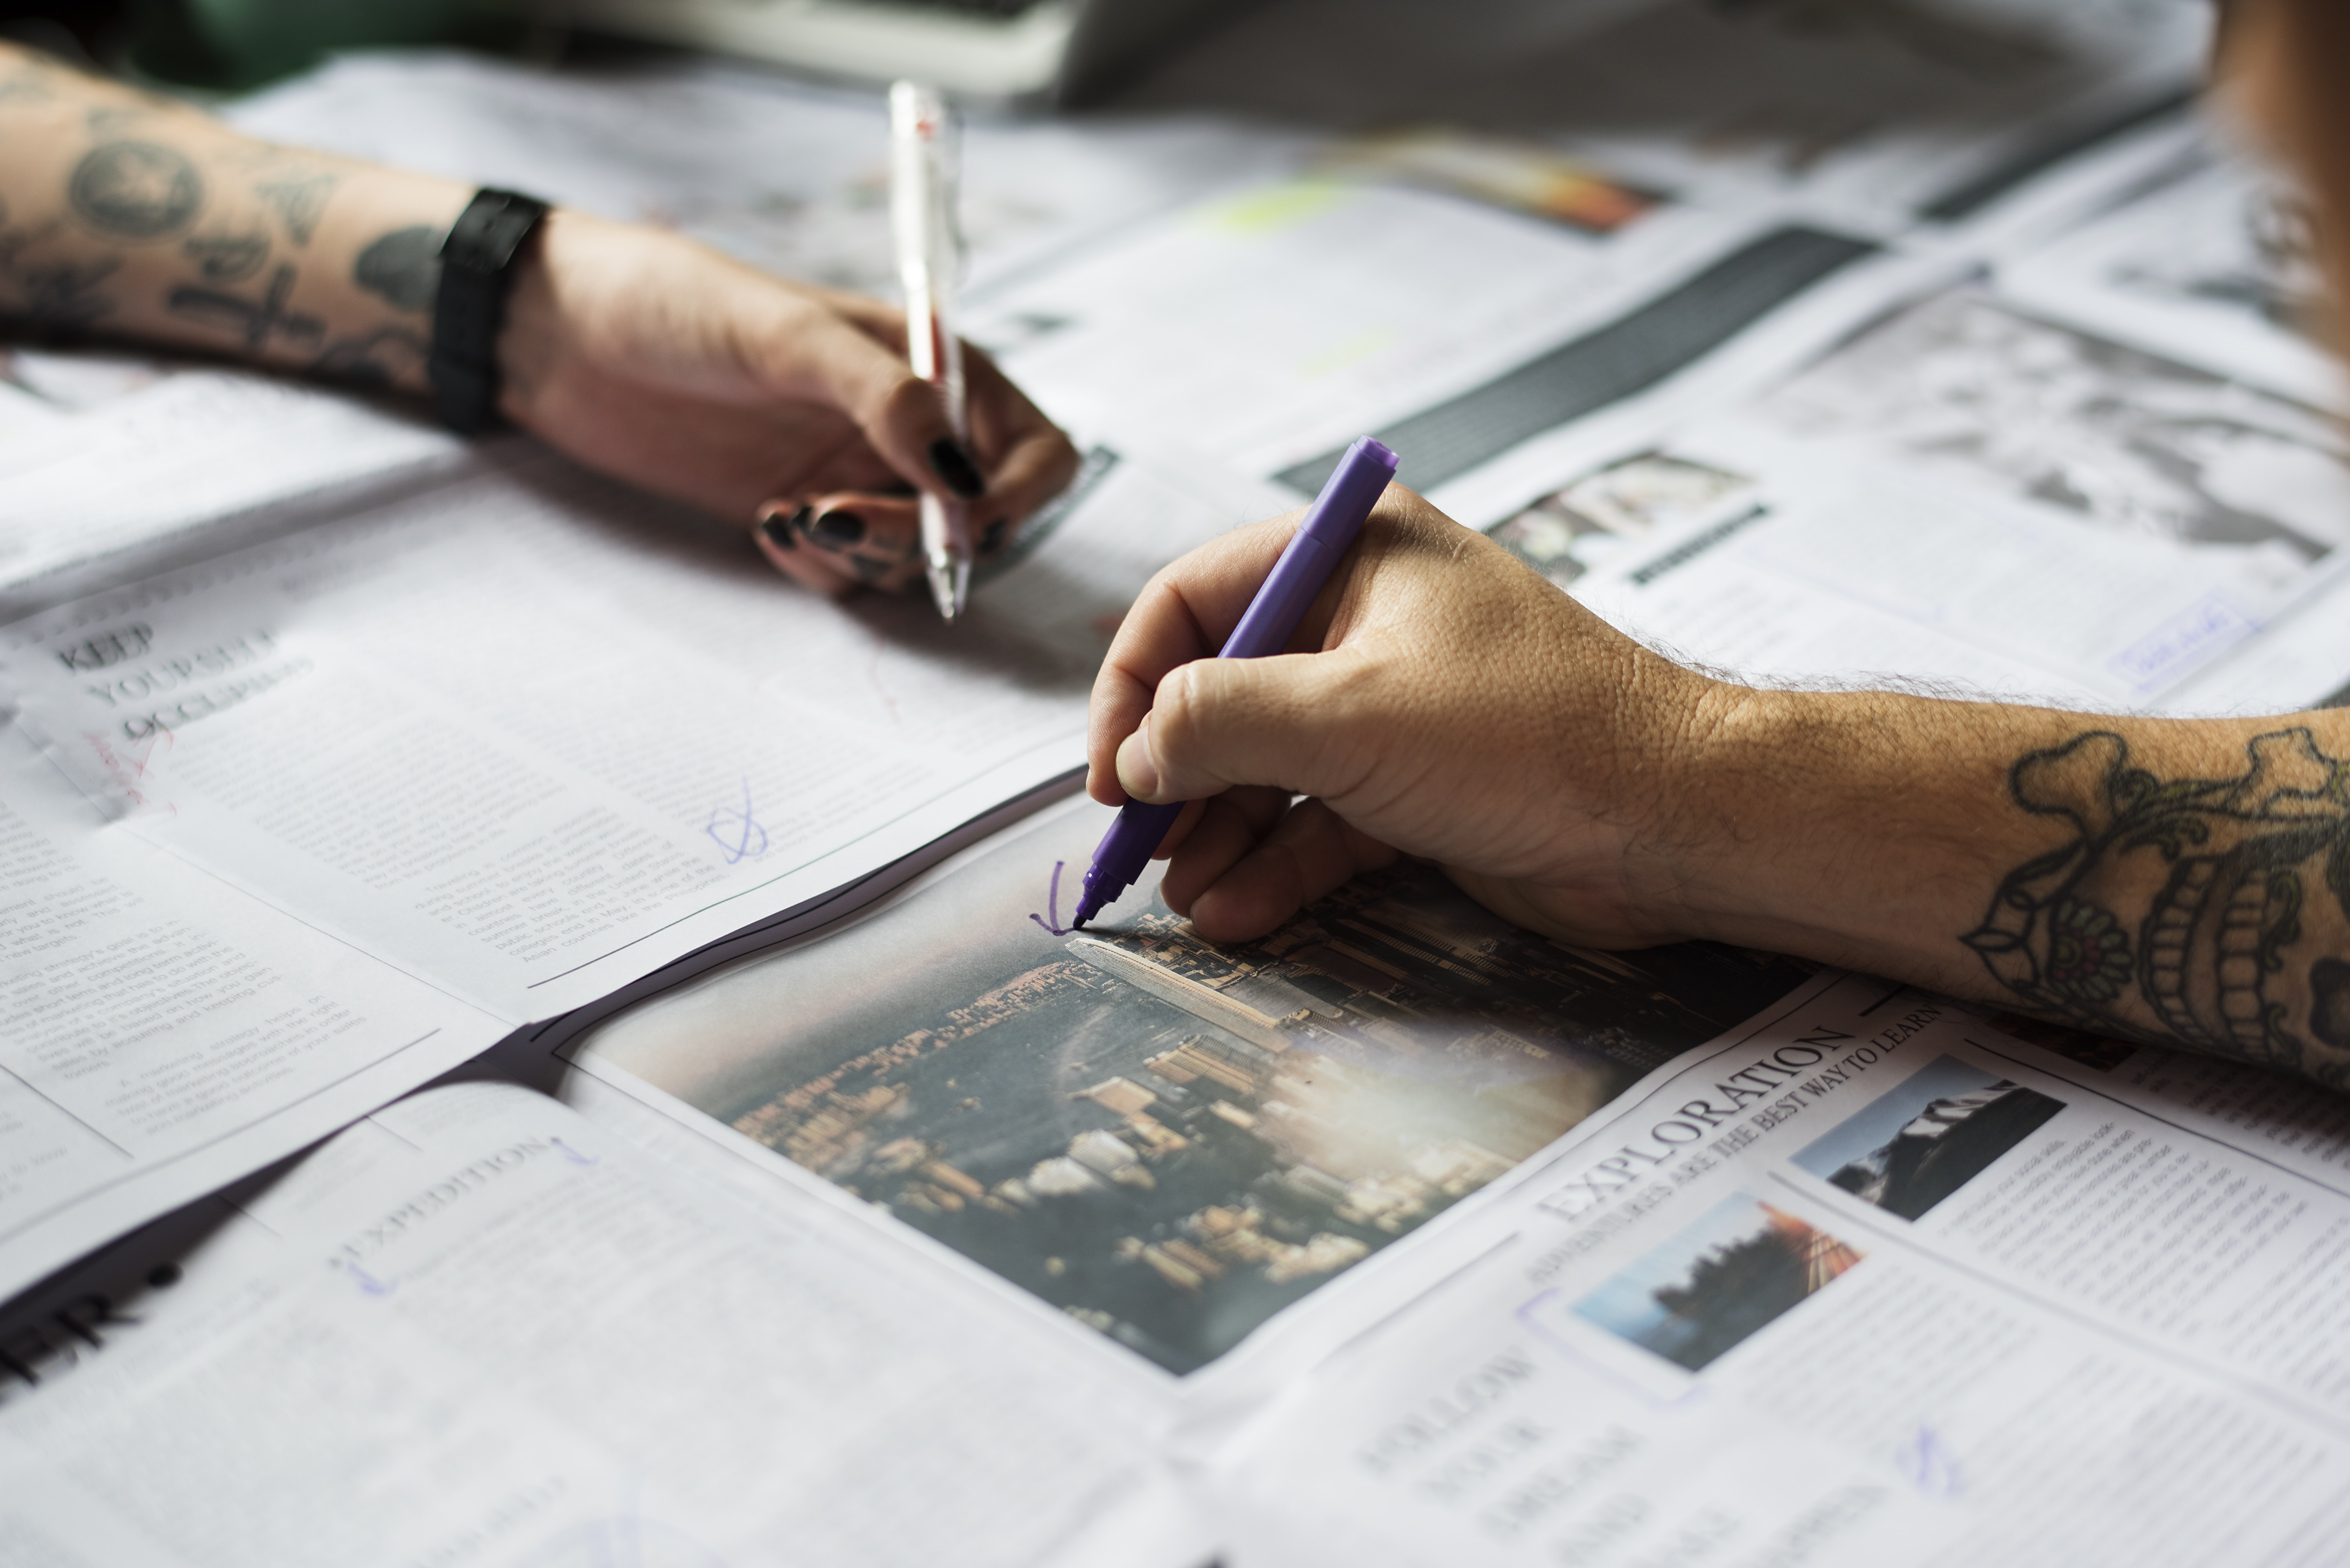 Two people with tattoos on their arms drawing in a newspaper